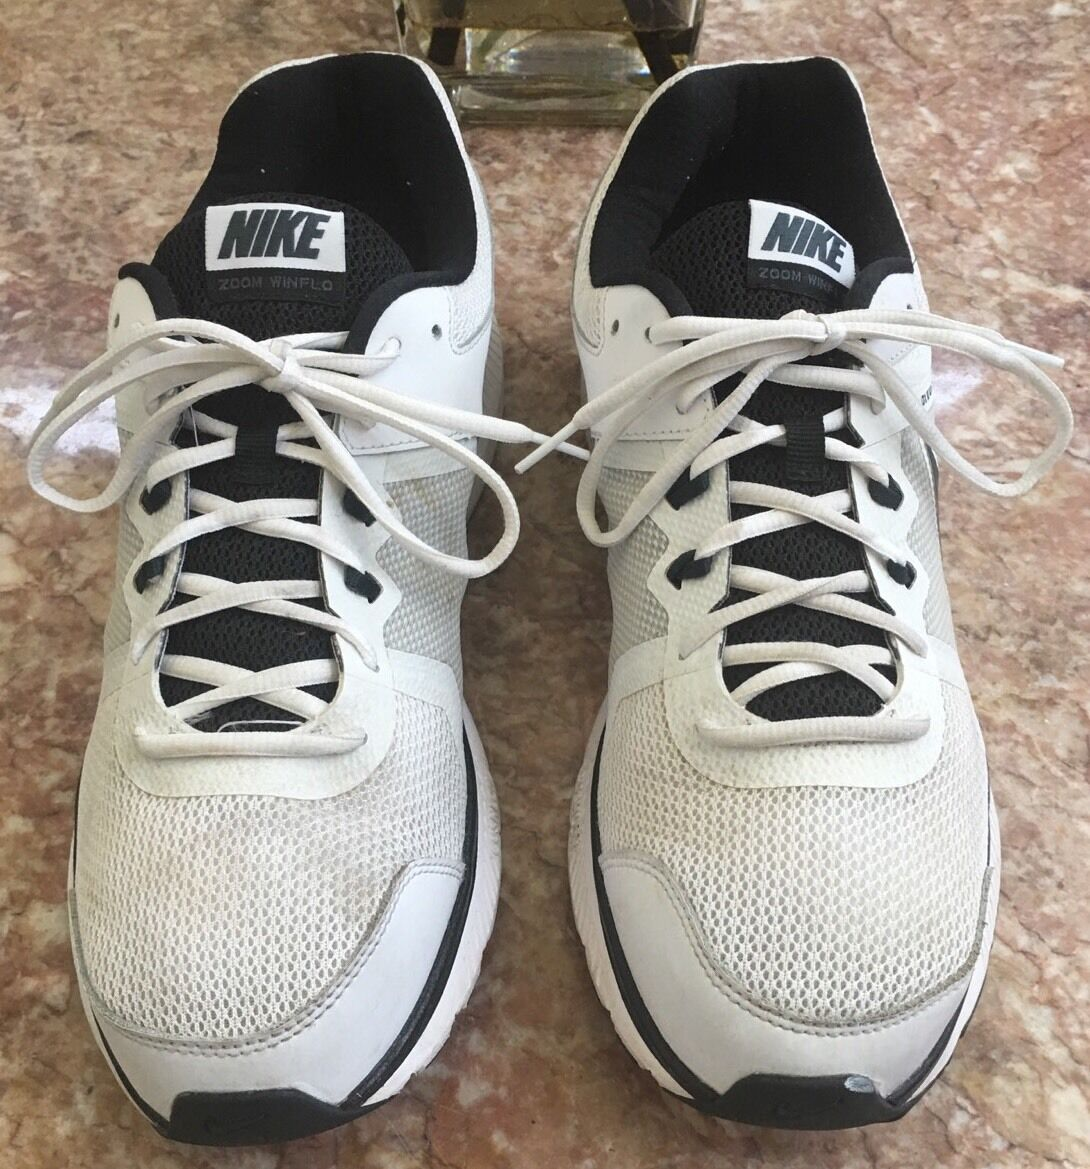 NIKE ZOOM WINFLO MEN'S RUNNING WHITE CHARCOAL -BLACK SHOE 684488-100 SIZE EUC